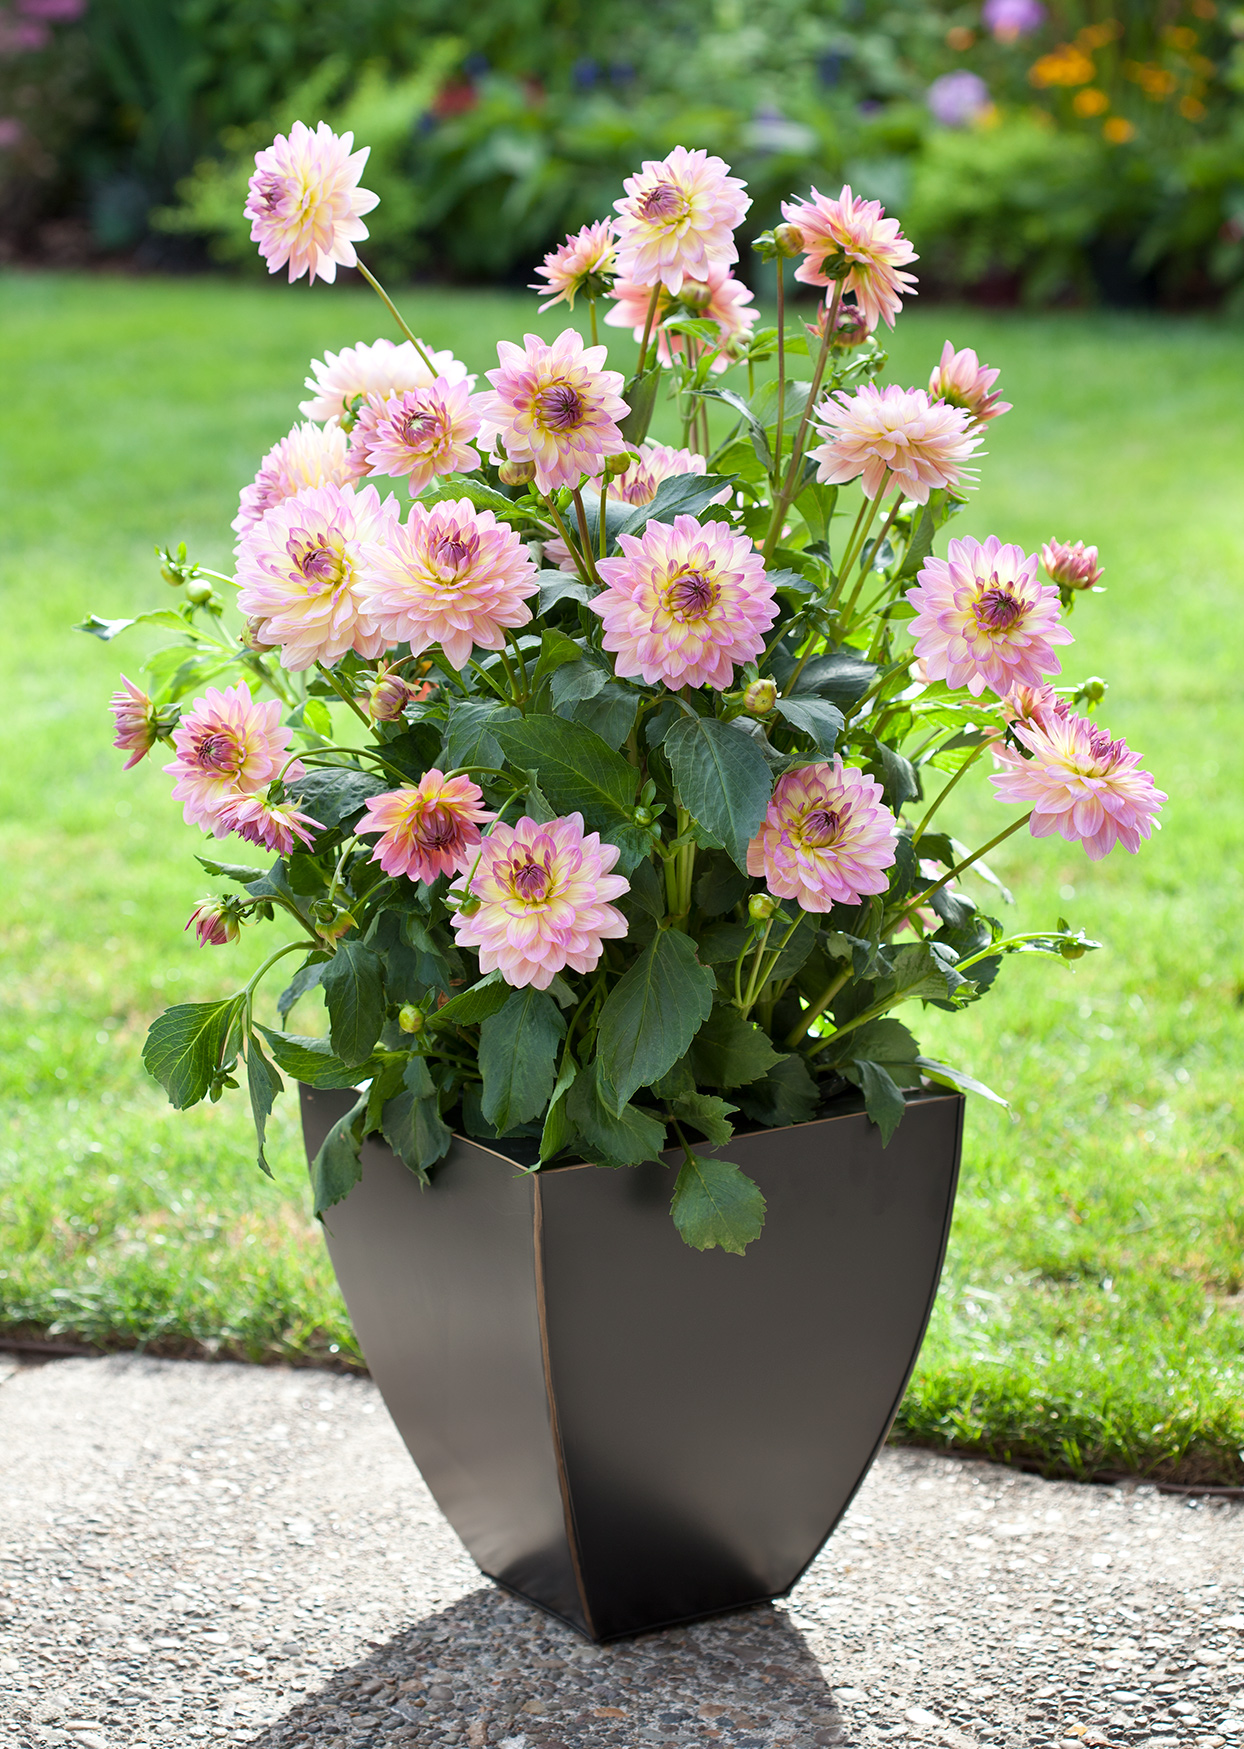 pink dahlias growing in dark gray container outside